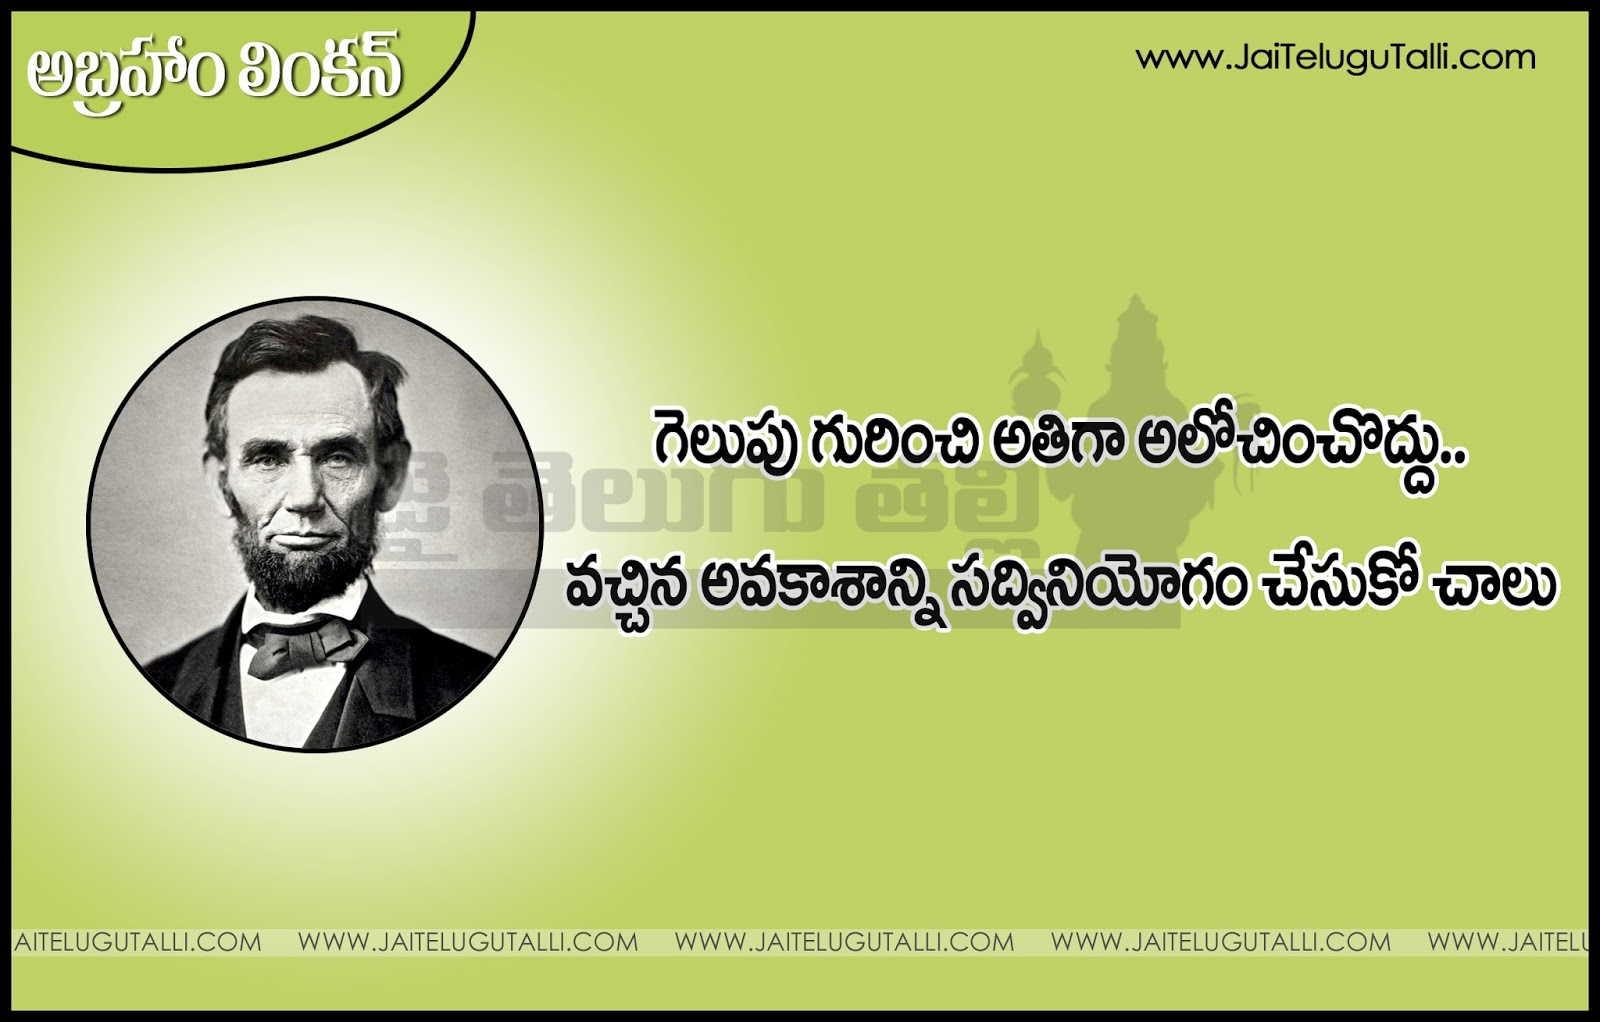 Abraham Lincoln Quotes On Life Abraham Lincoln Beautiful Thoughts And Quotes In Telugu  Www